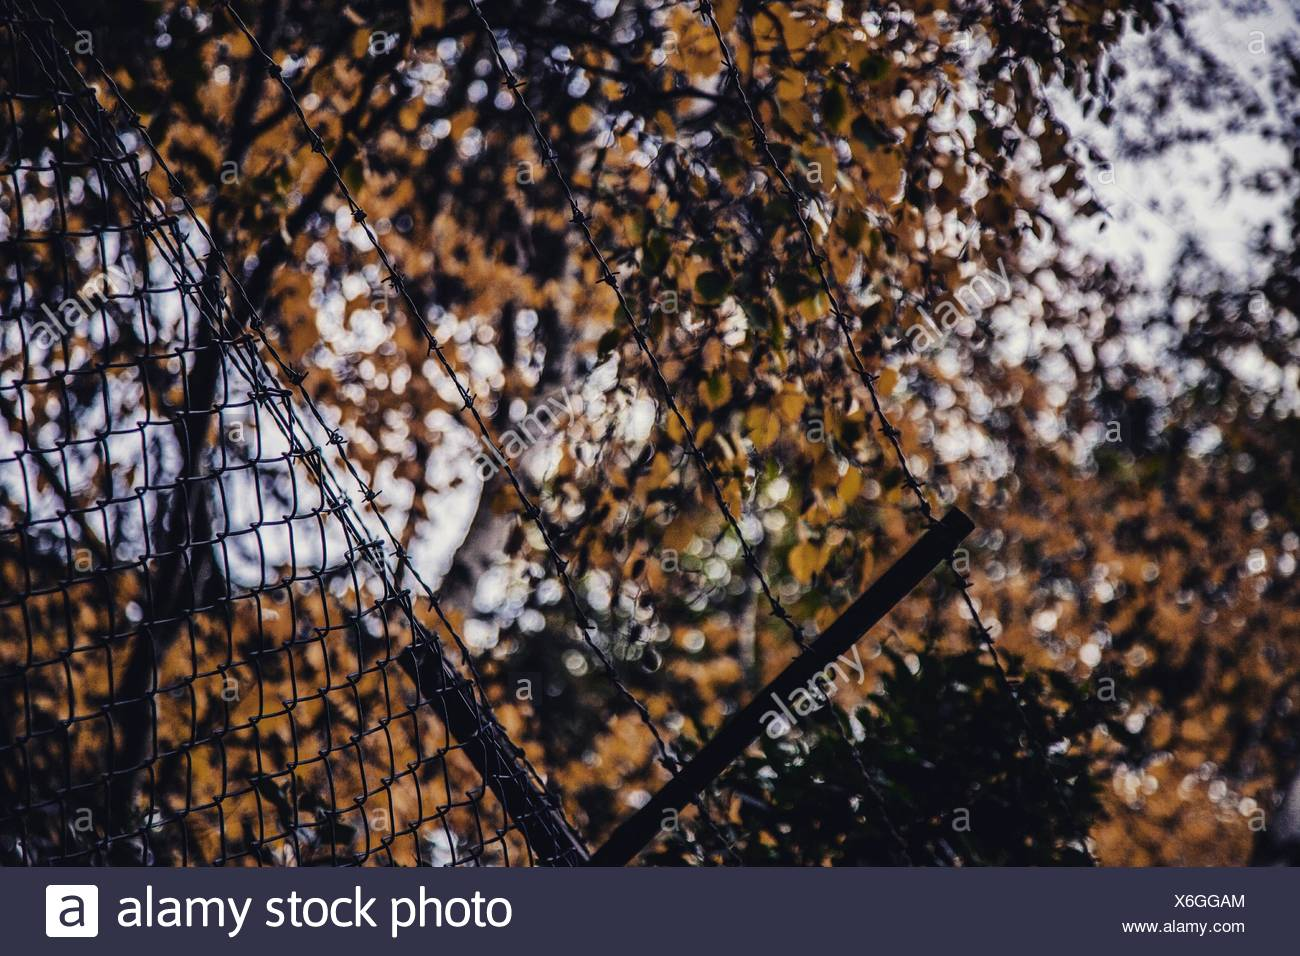 Low Angle View Of Barb Wires Against Trees - Stock Image